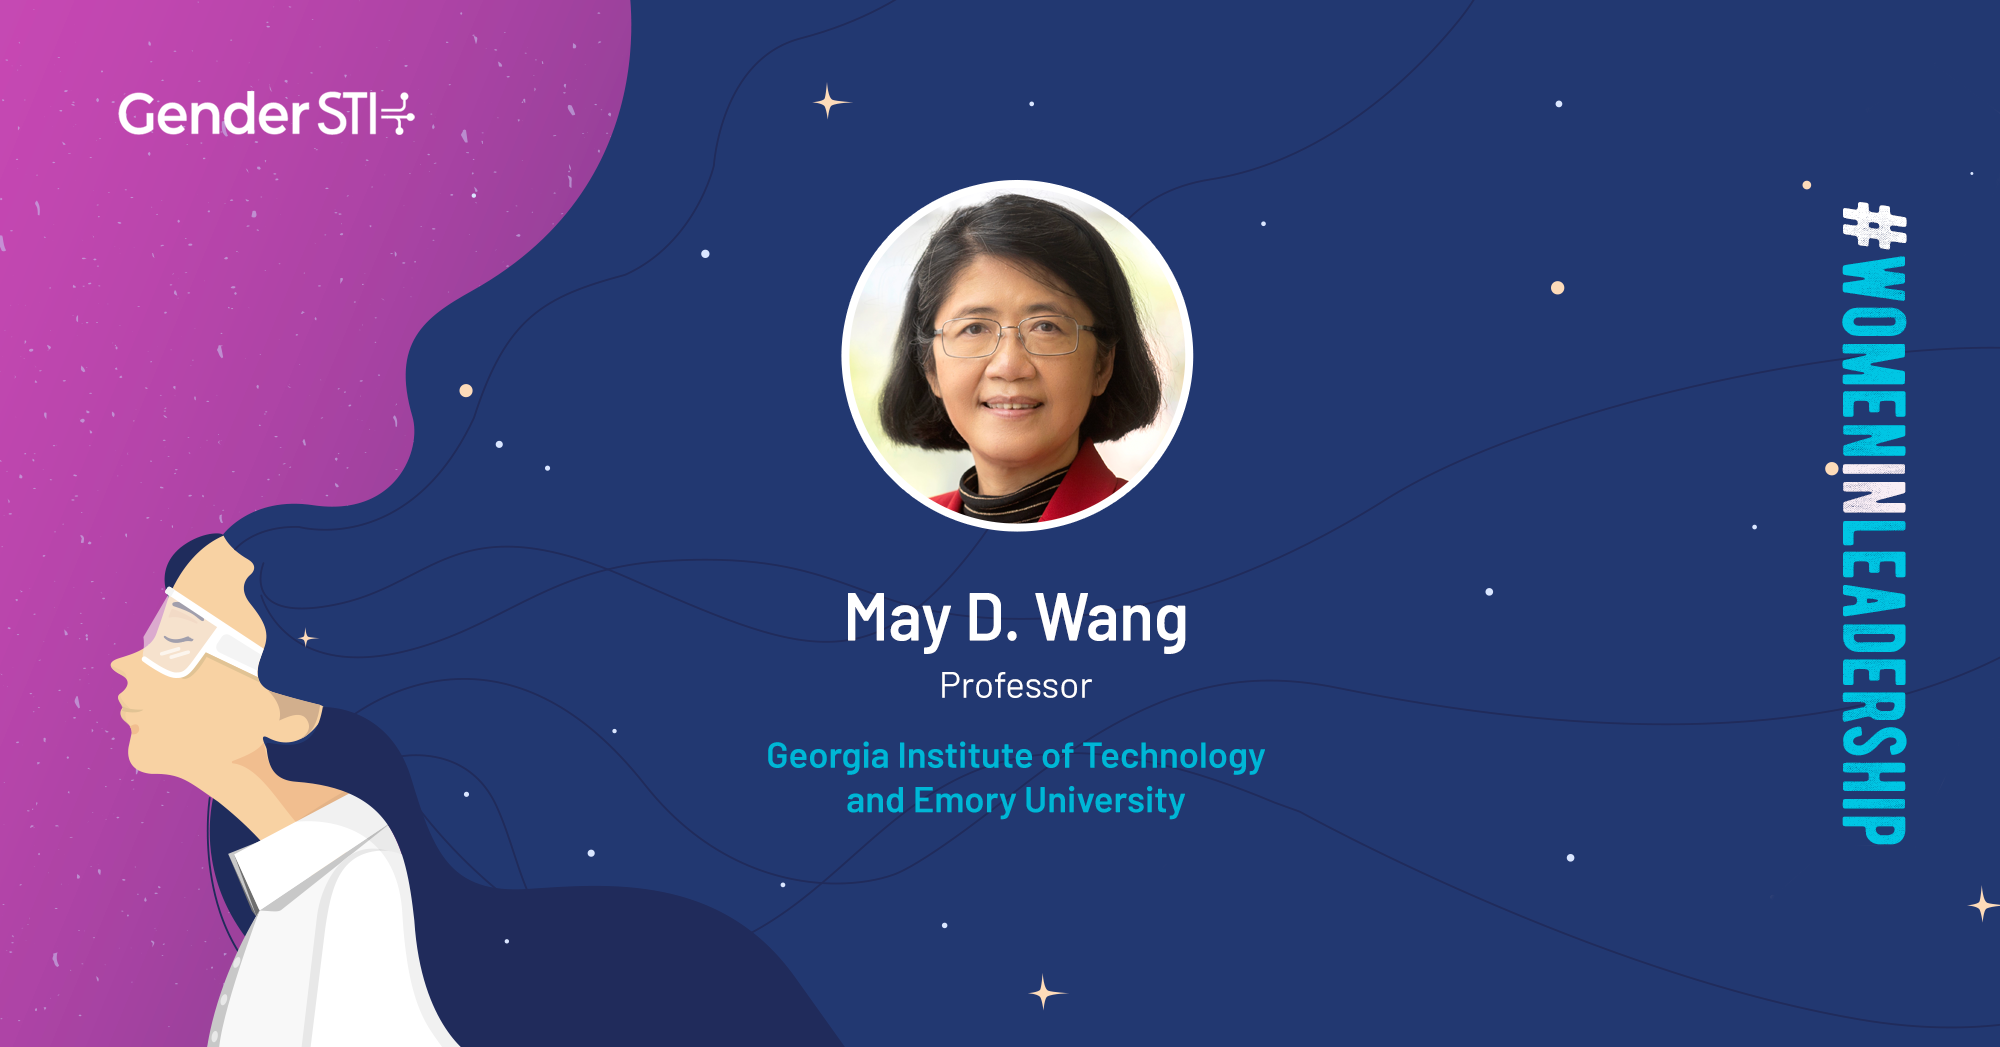 May D. Wang, a professor at the Georgia Institute of Technology and Emory University, is one of Gender STI's #WomenInLeadership nominees.